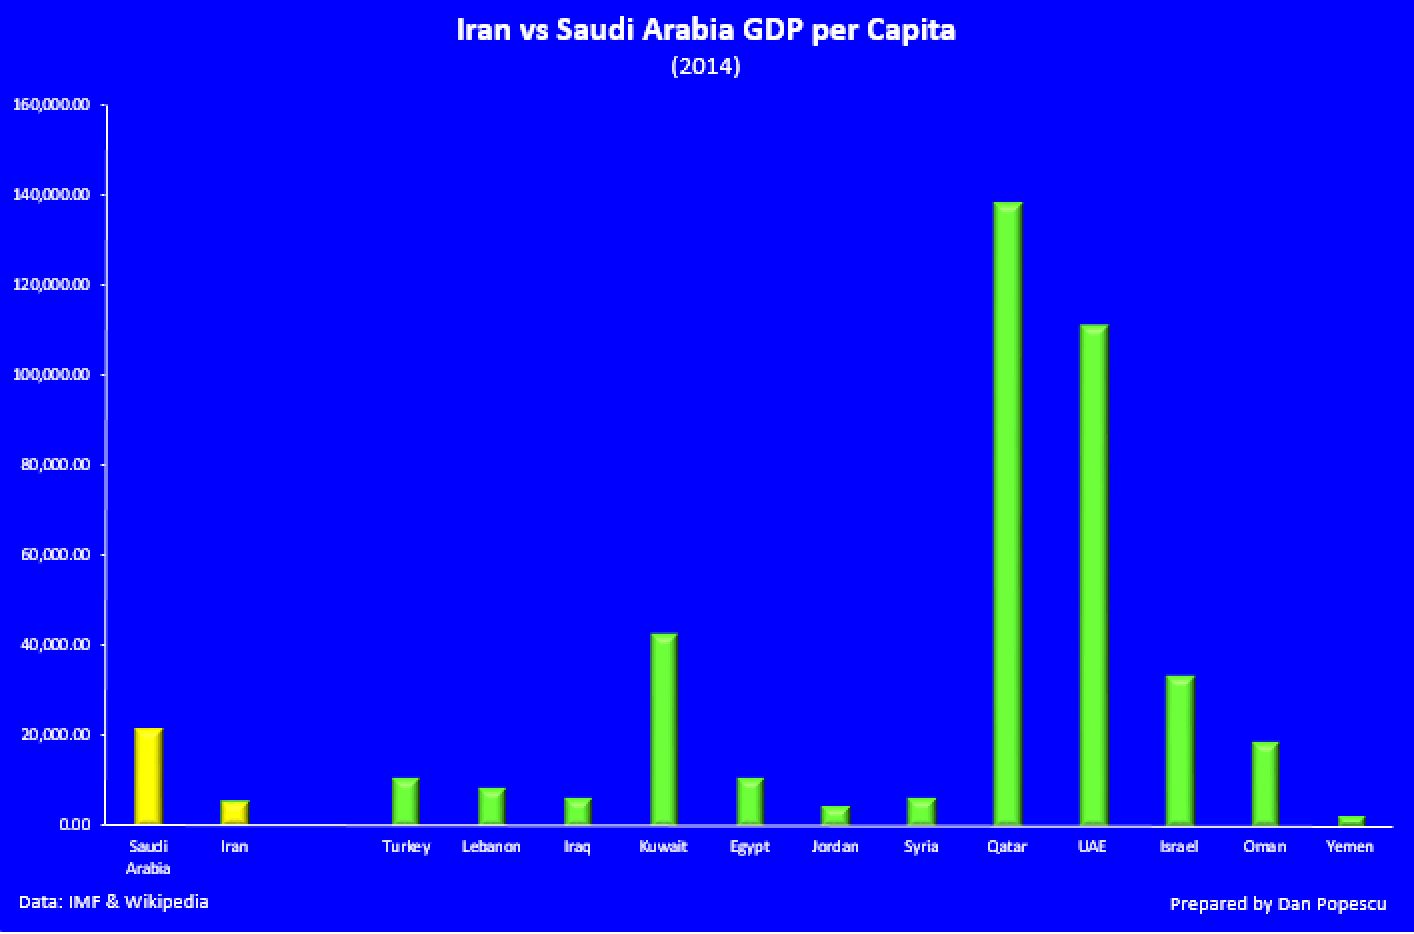 Iran and Saudi Arabia GDP per capita